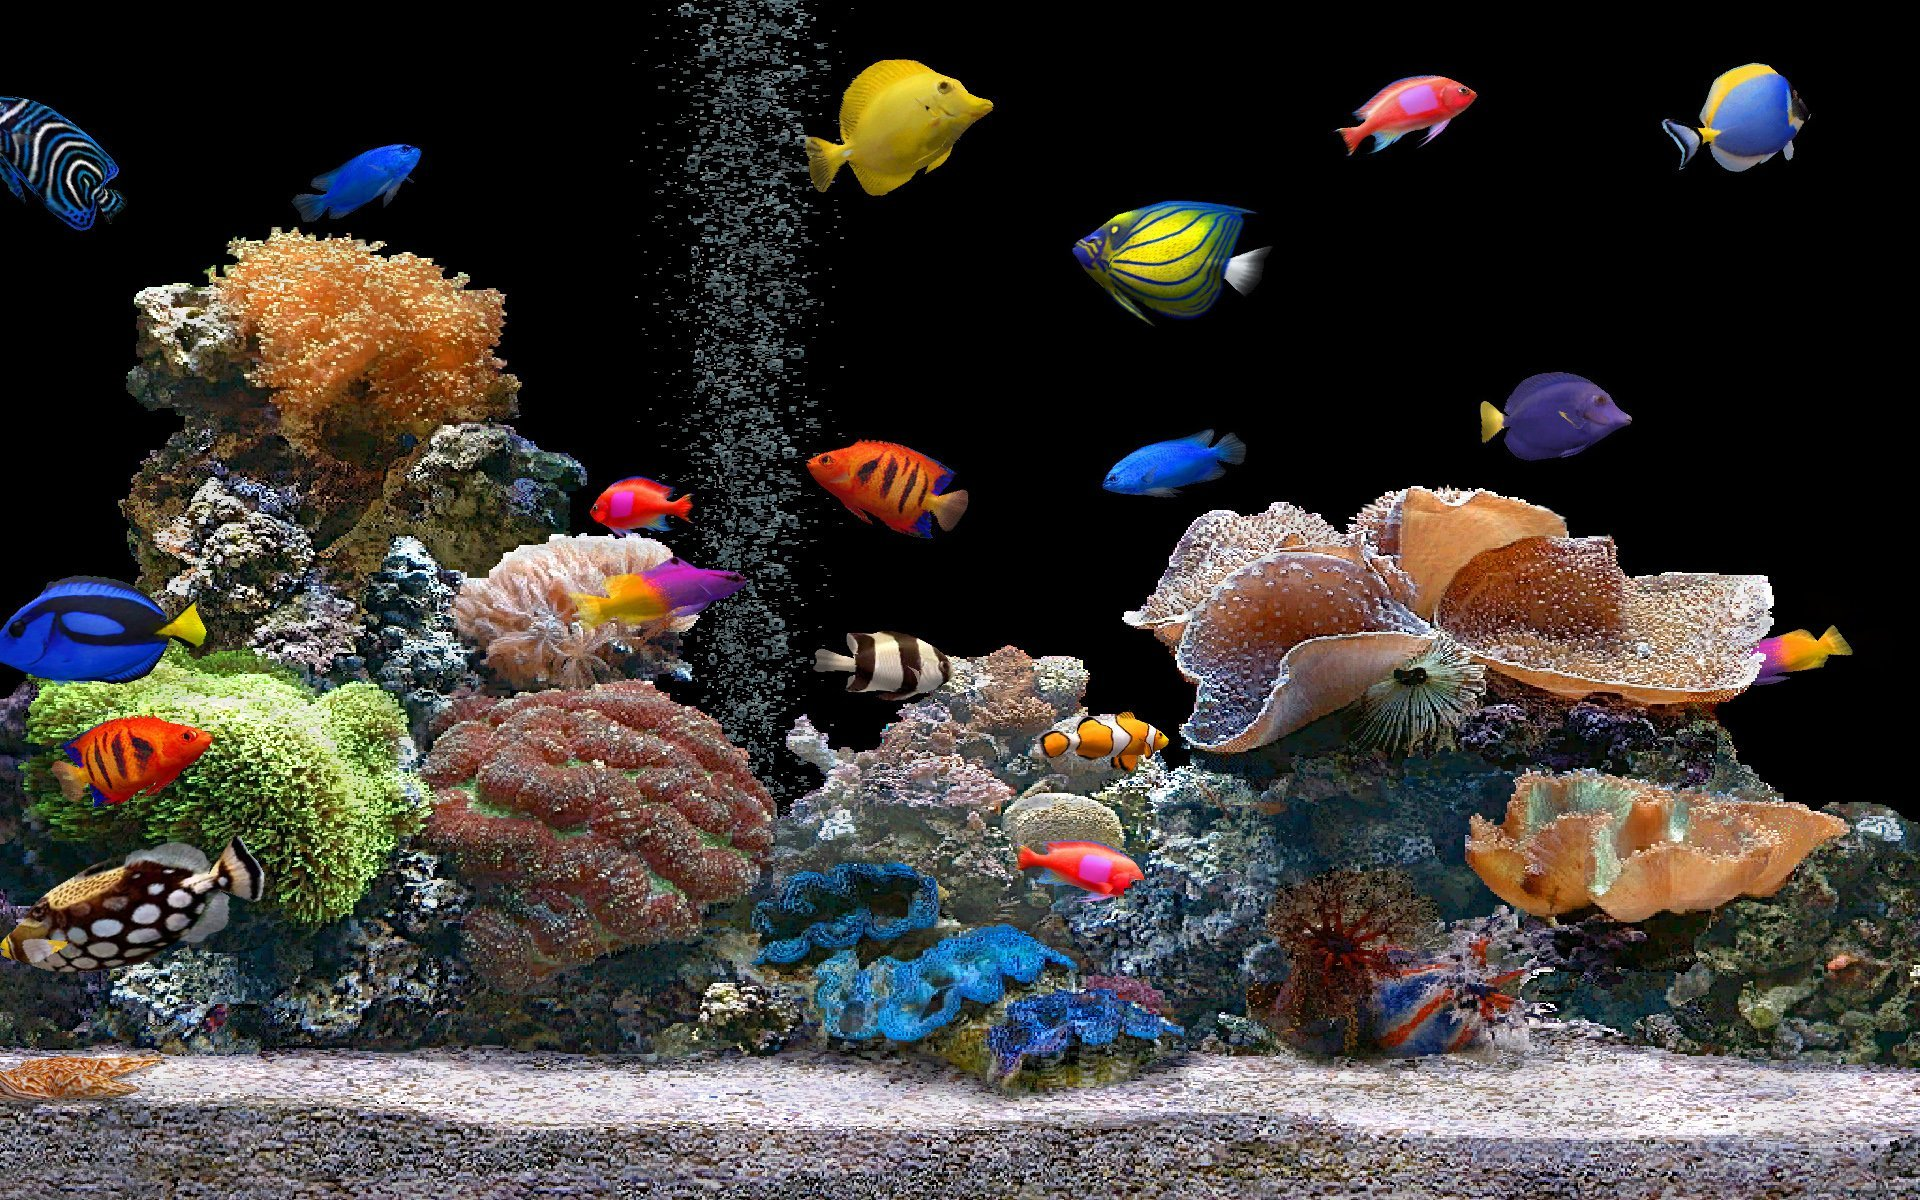 Aquarium wallpaper   120085 1920x1200